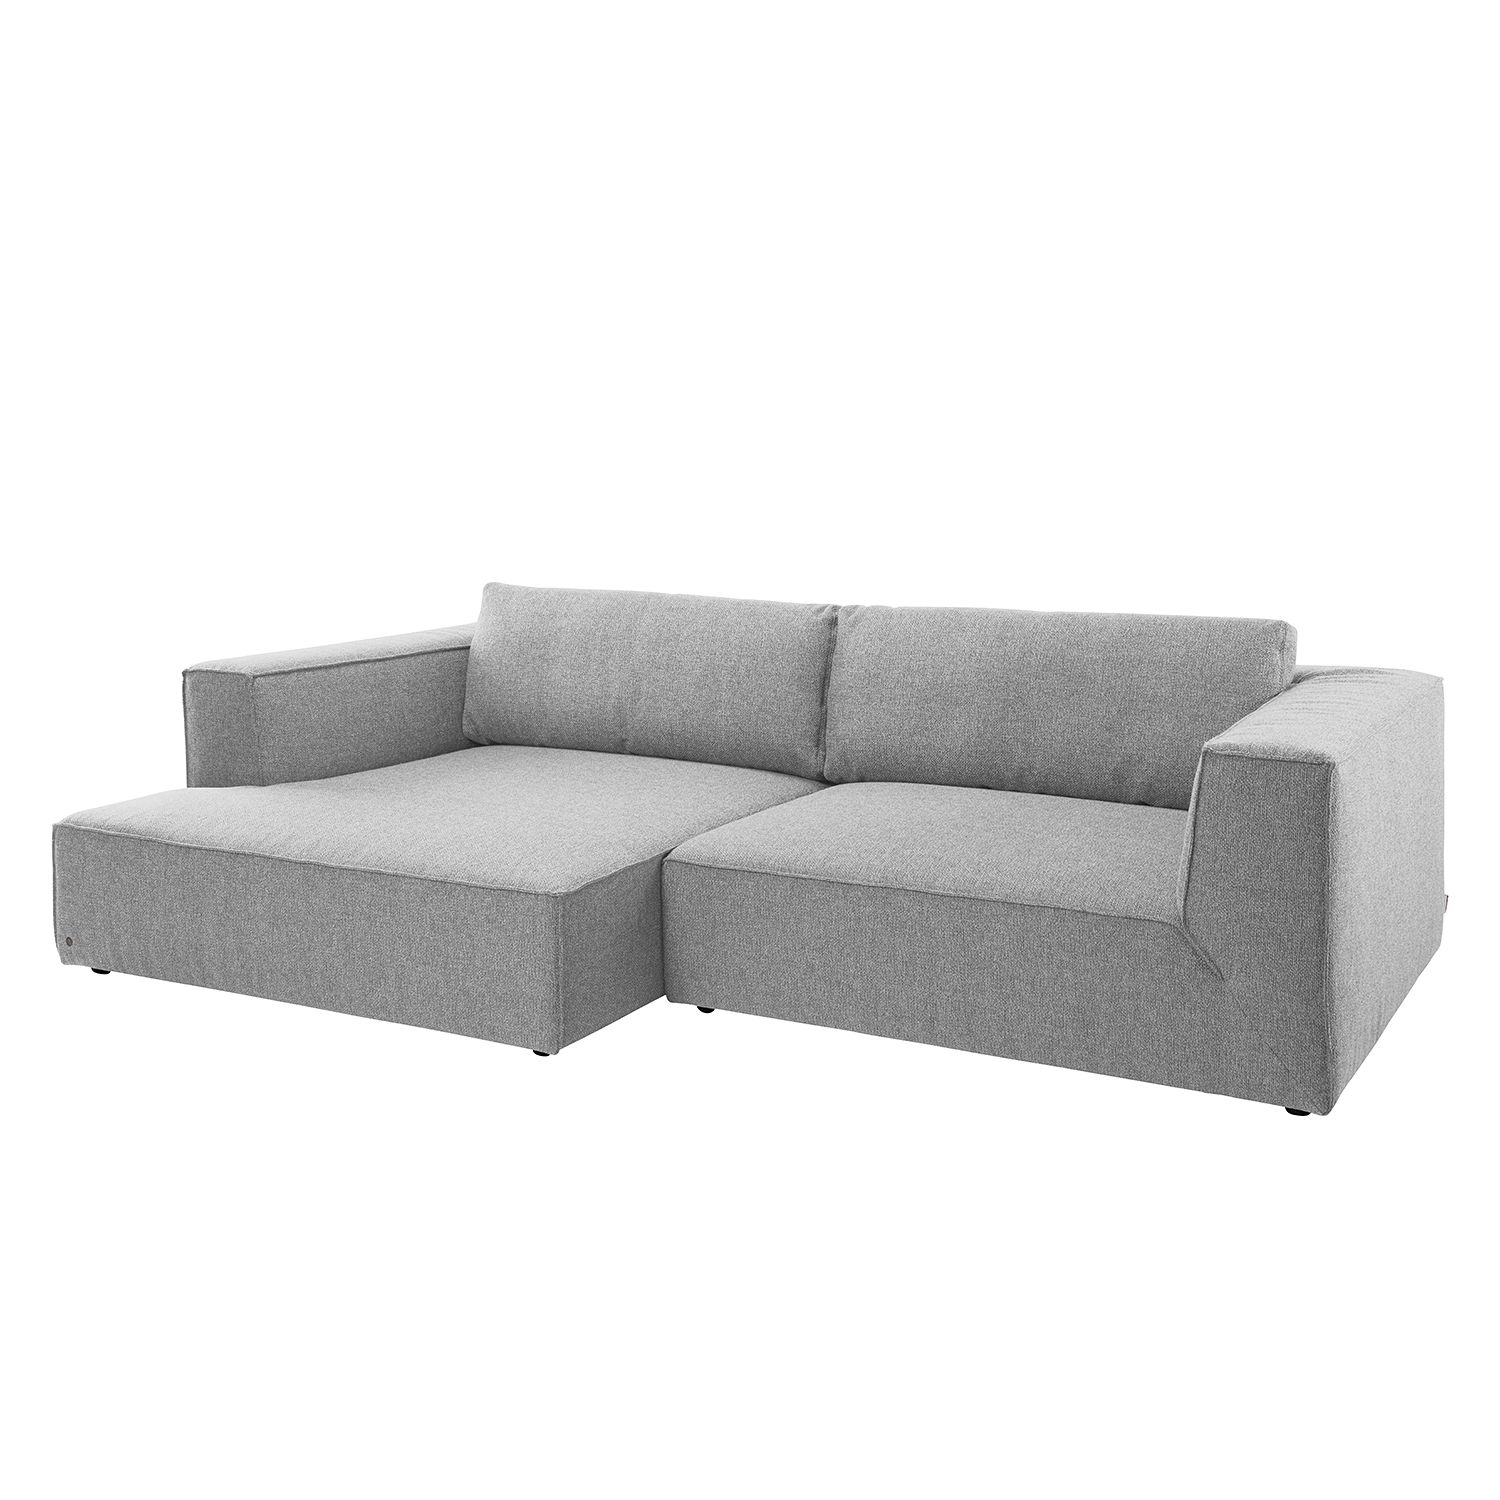 Ecksofa Big Cube Style Webstoff - Longchair davorstehend links - Stoff TBO29 moody grey, Tom Tailor